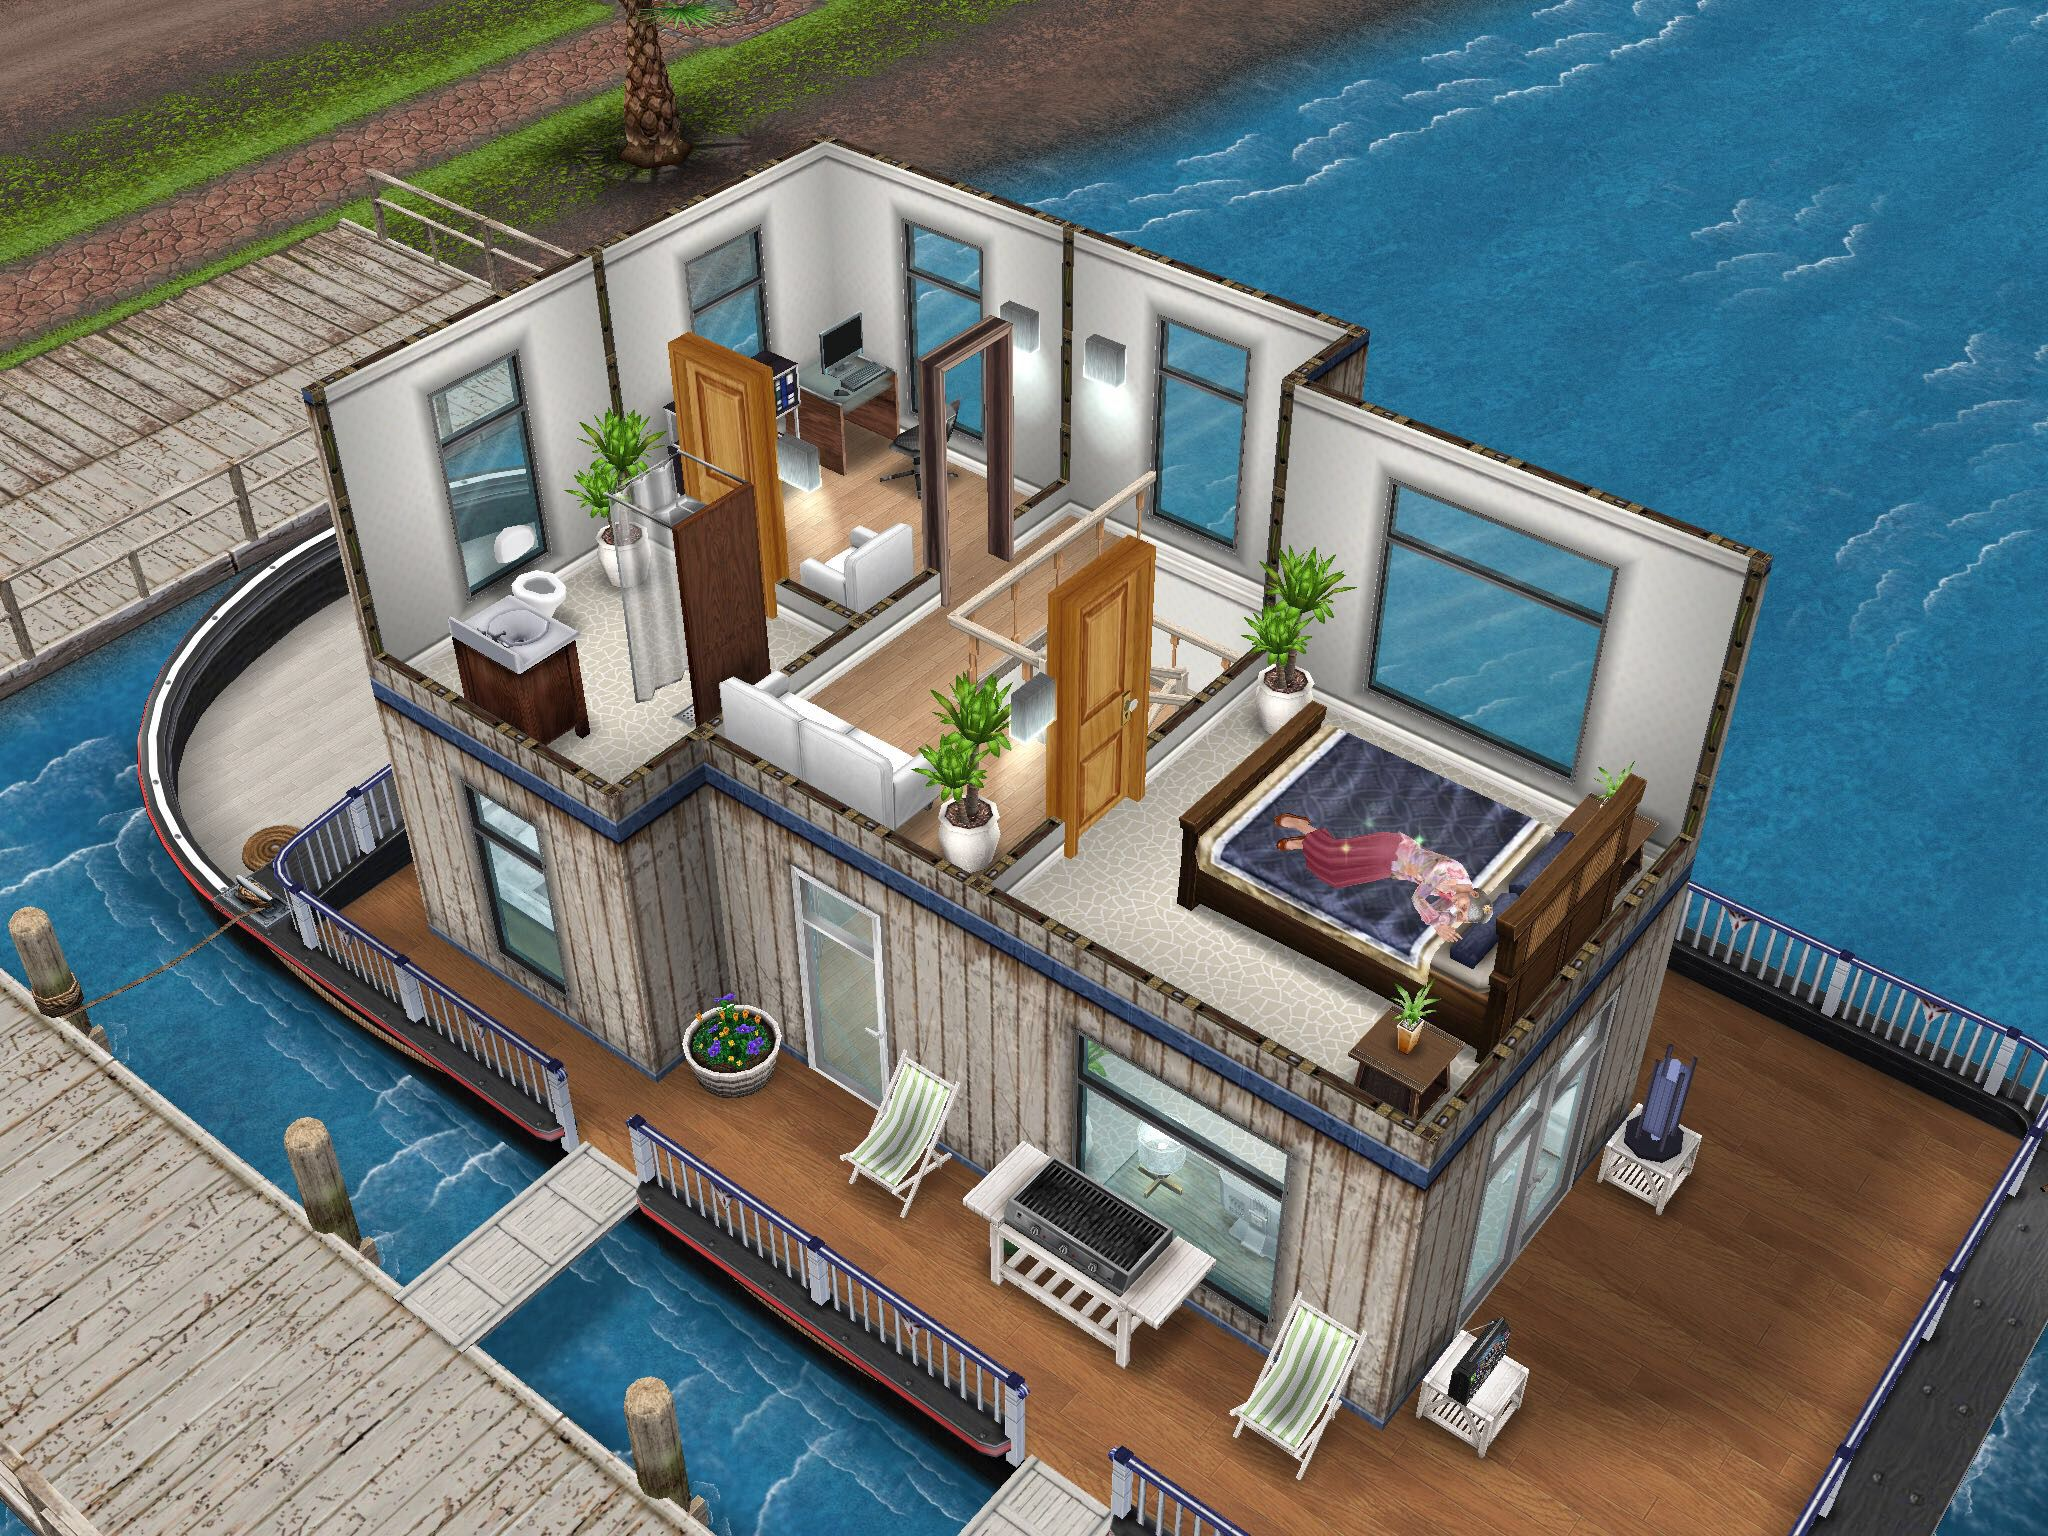 House design sims - White Inspired Houseboat Thesims Simsfreeplay Housedesign Designedbyjade Xx